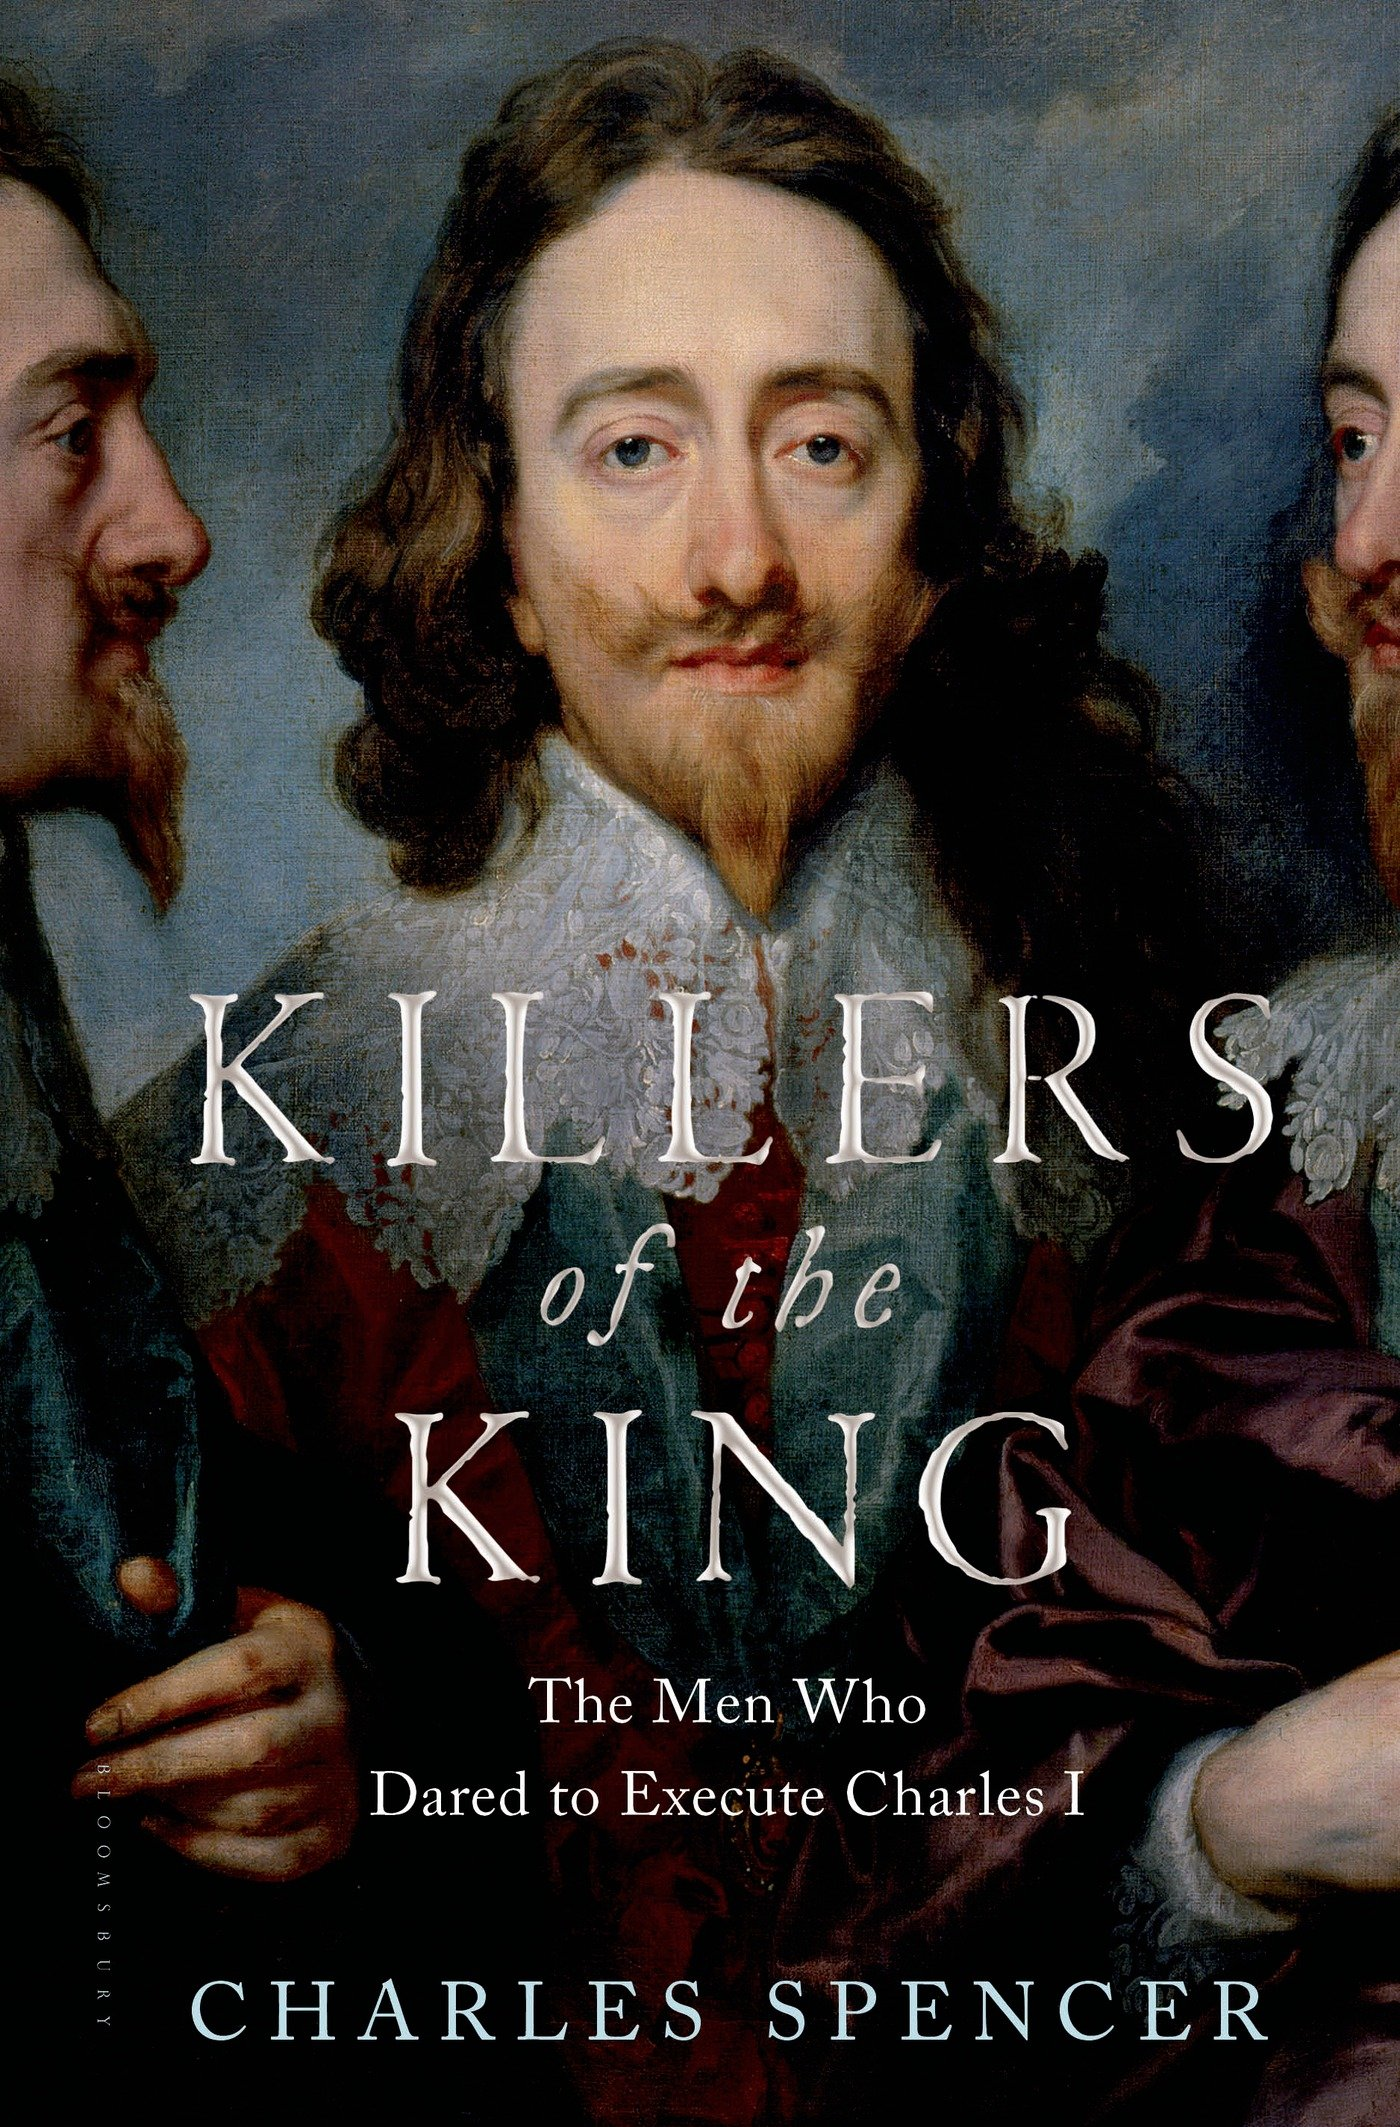 The Men Who Dared to Execute Charles I